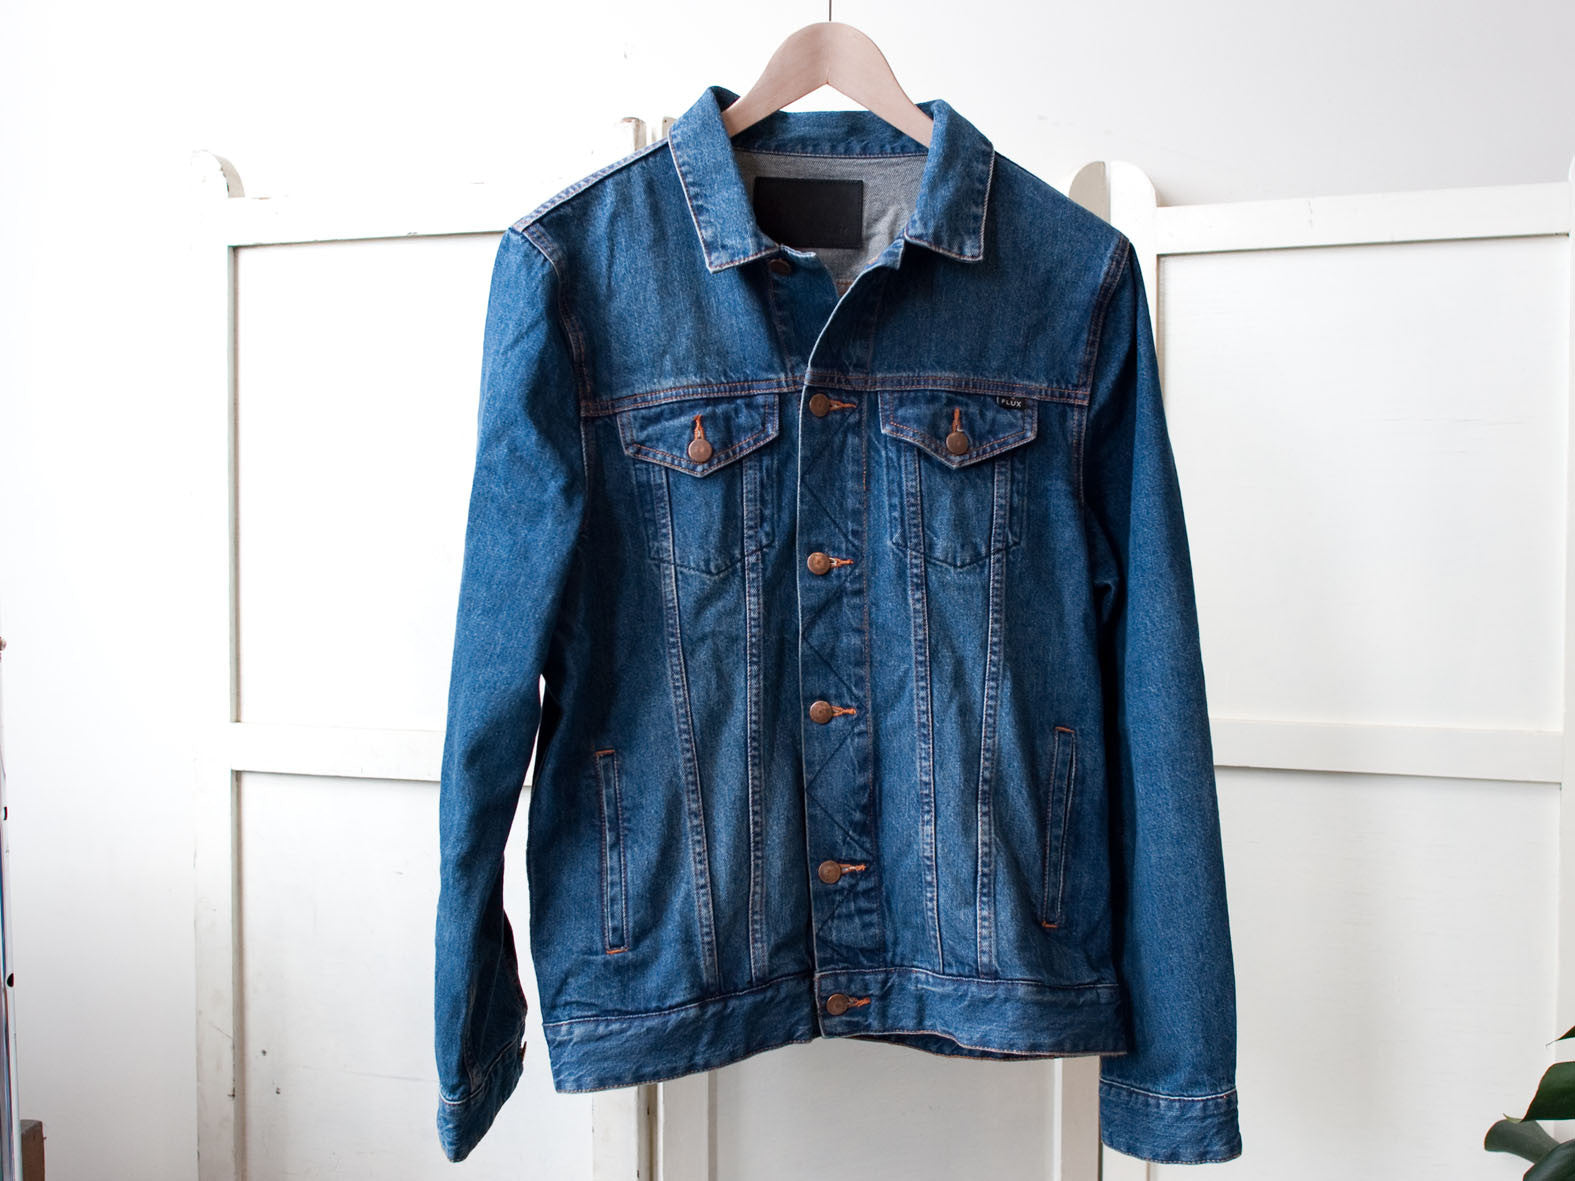 MOTOR CITY DENIM JACKET